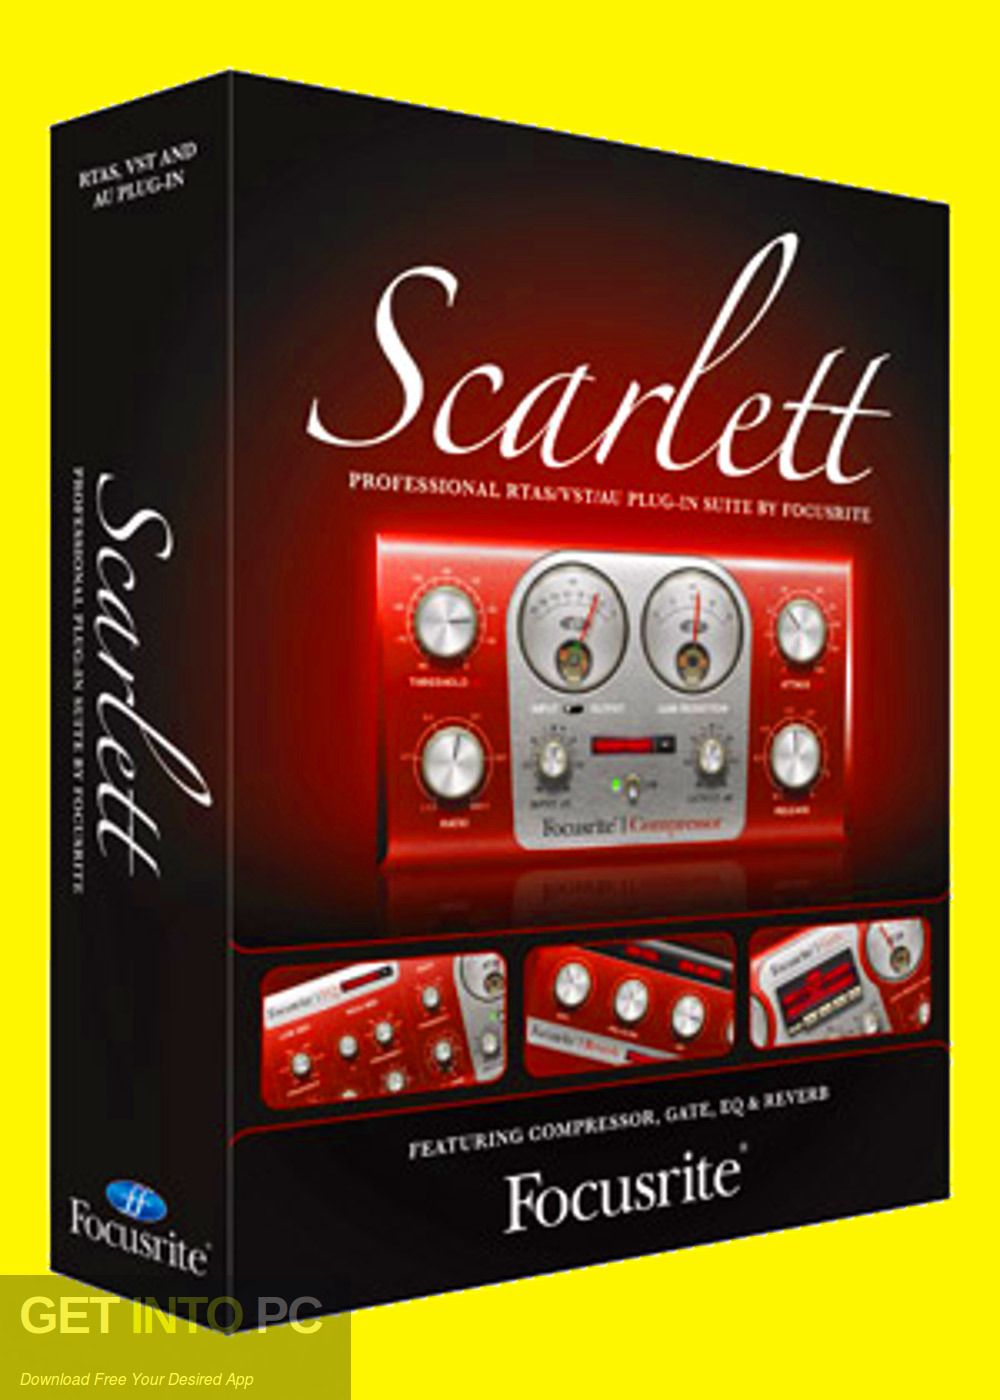 Focusrite - Scarlett Plug-in Suite VST Free Download-GetintoPC.com